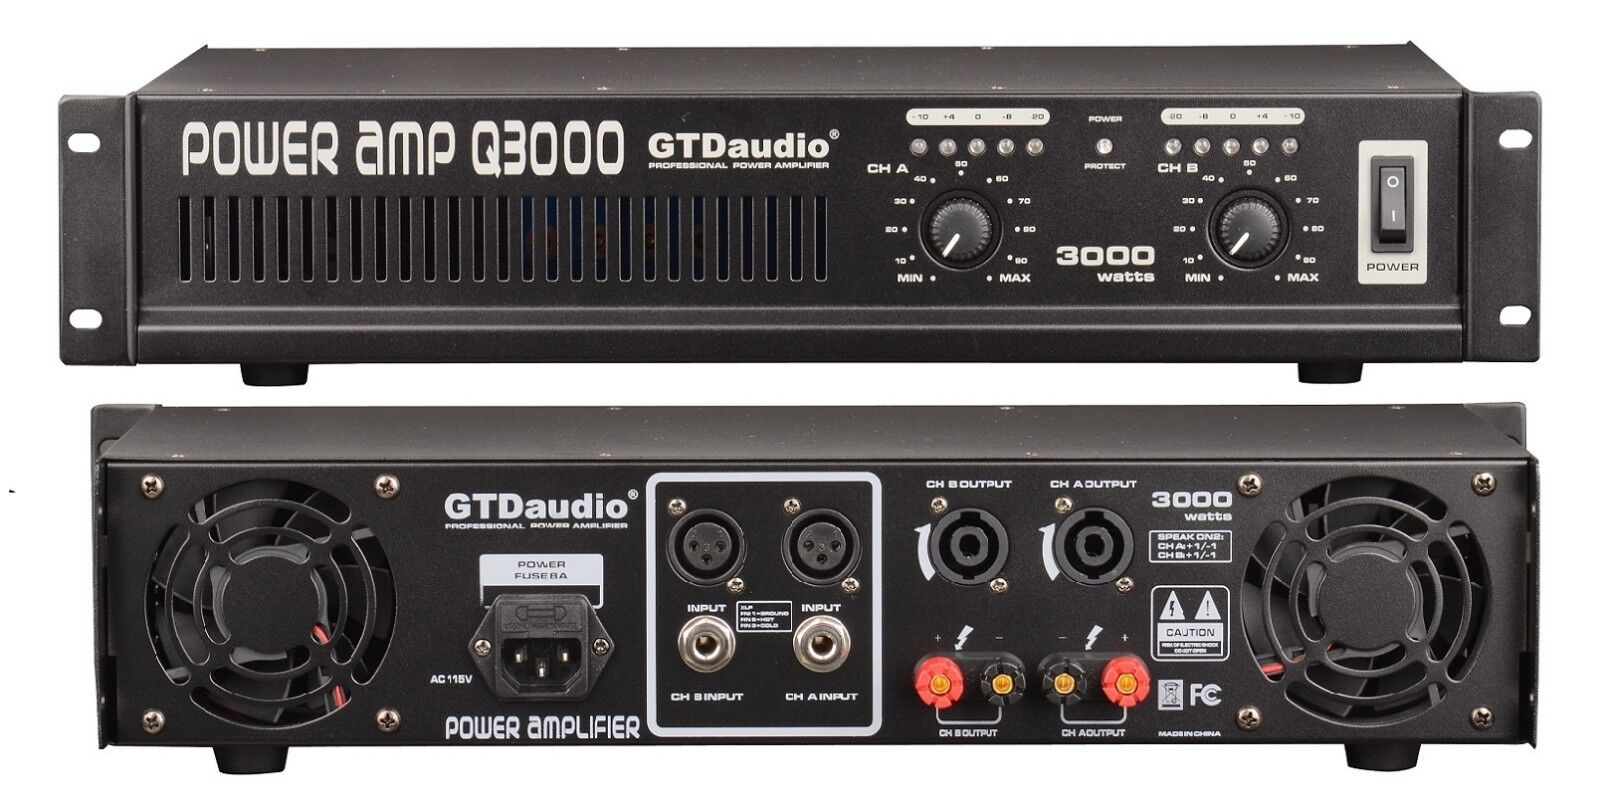 Gtd Audio Q3000 3000w Power Amplifier Ebay Two Way 20 Watts